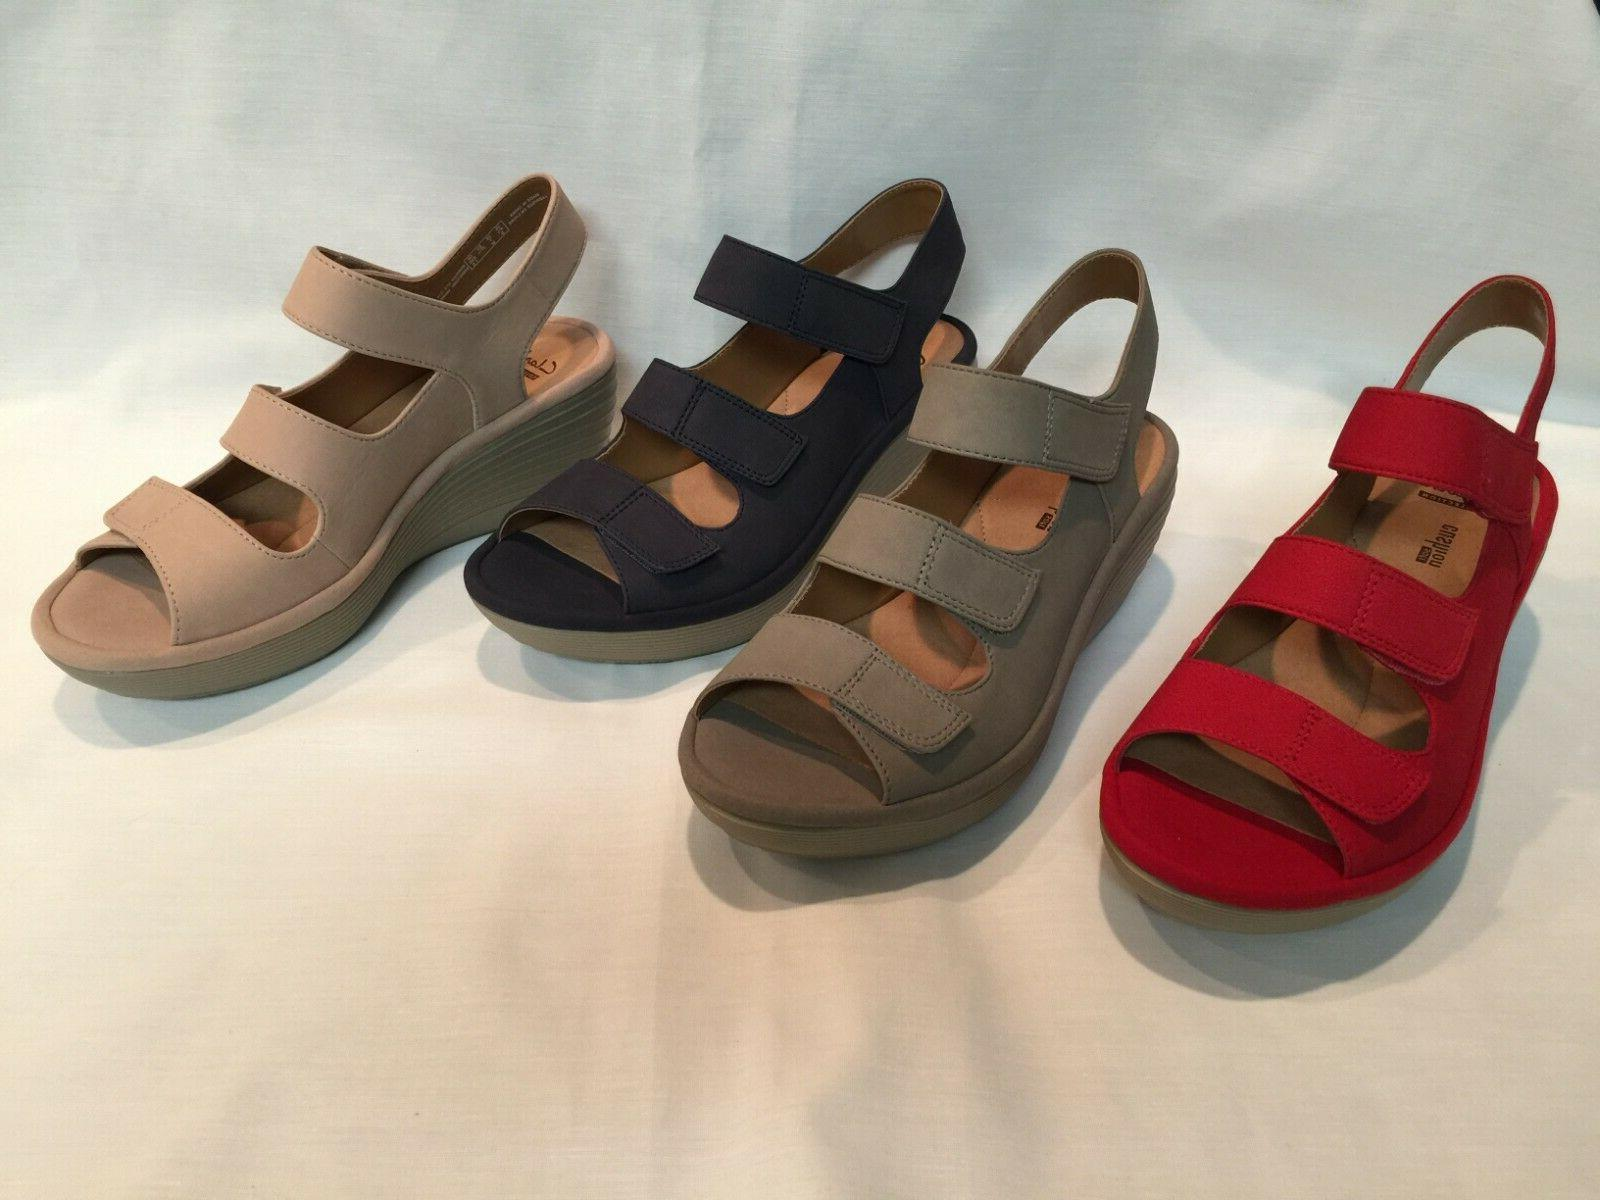 New! Clarks Wedge - Juno, Color